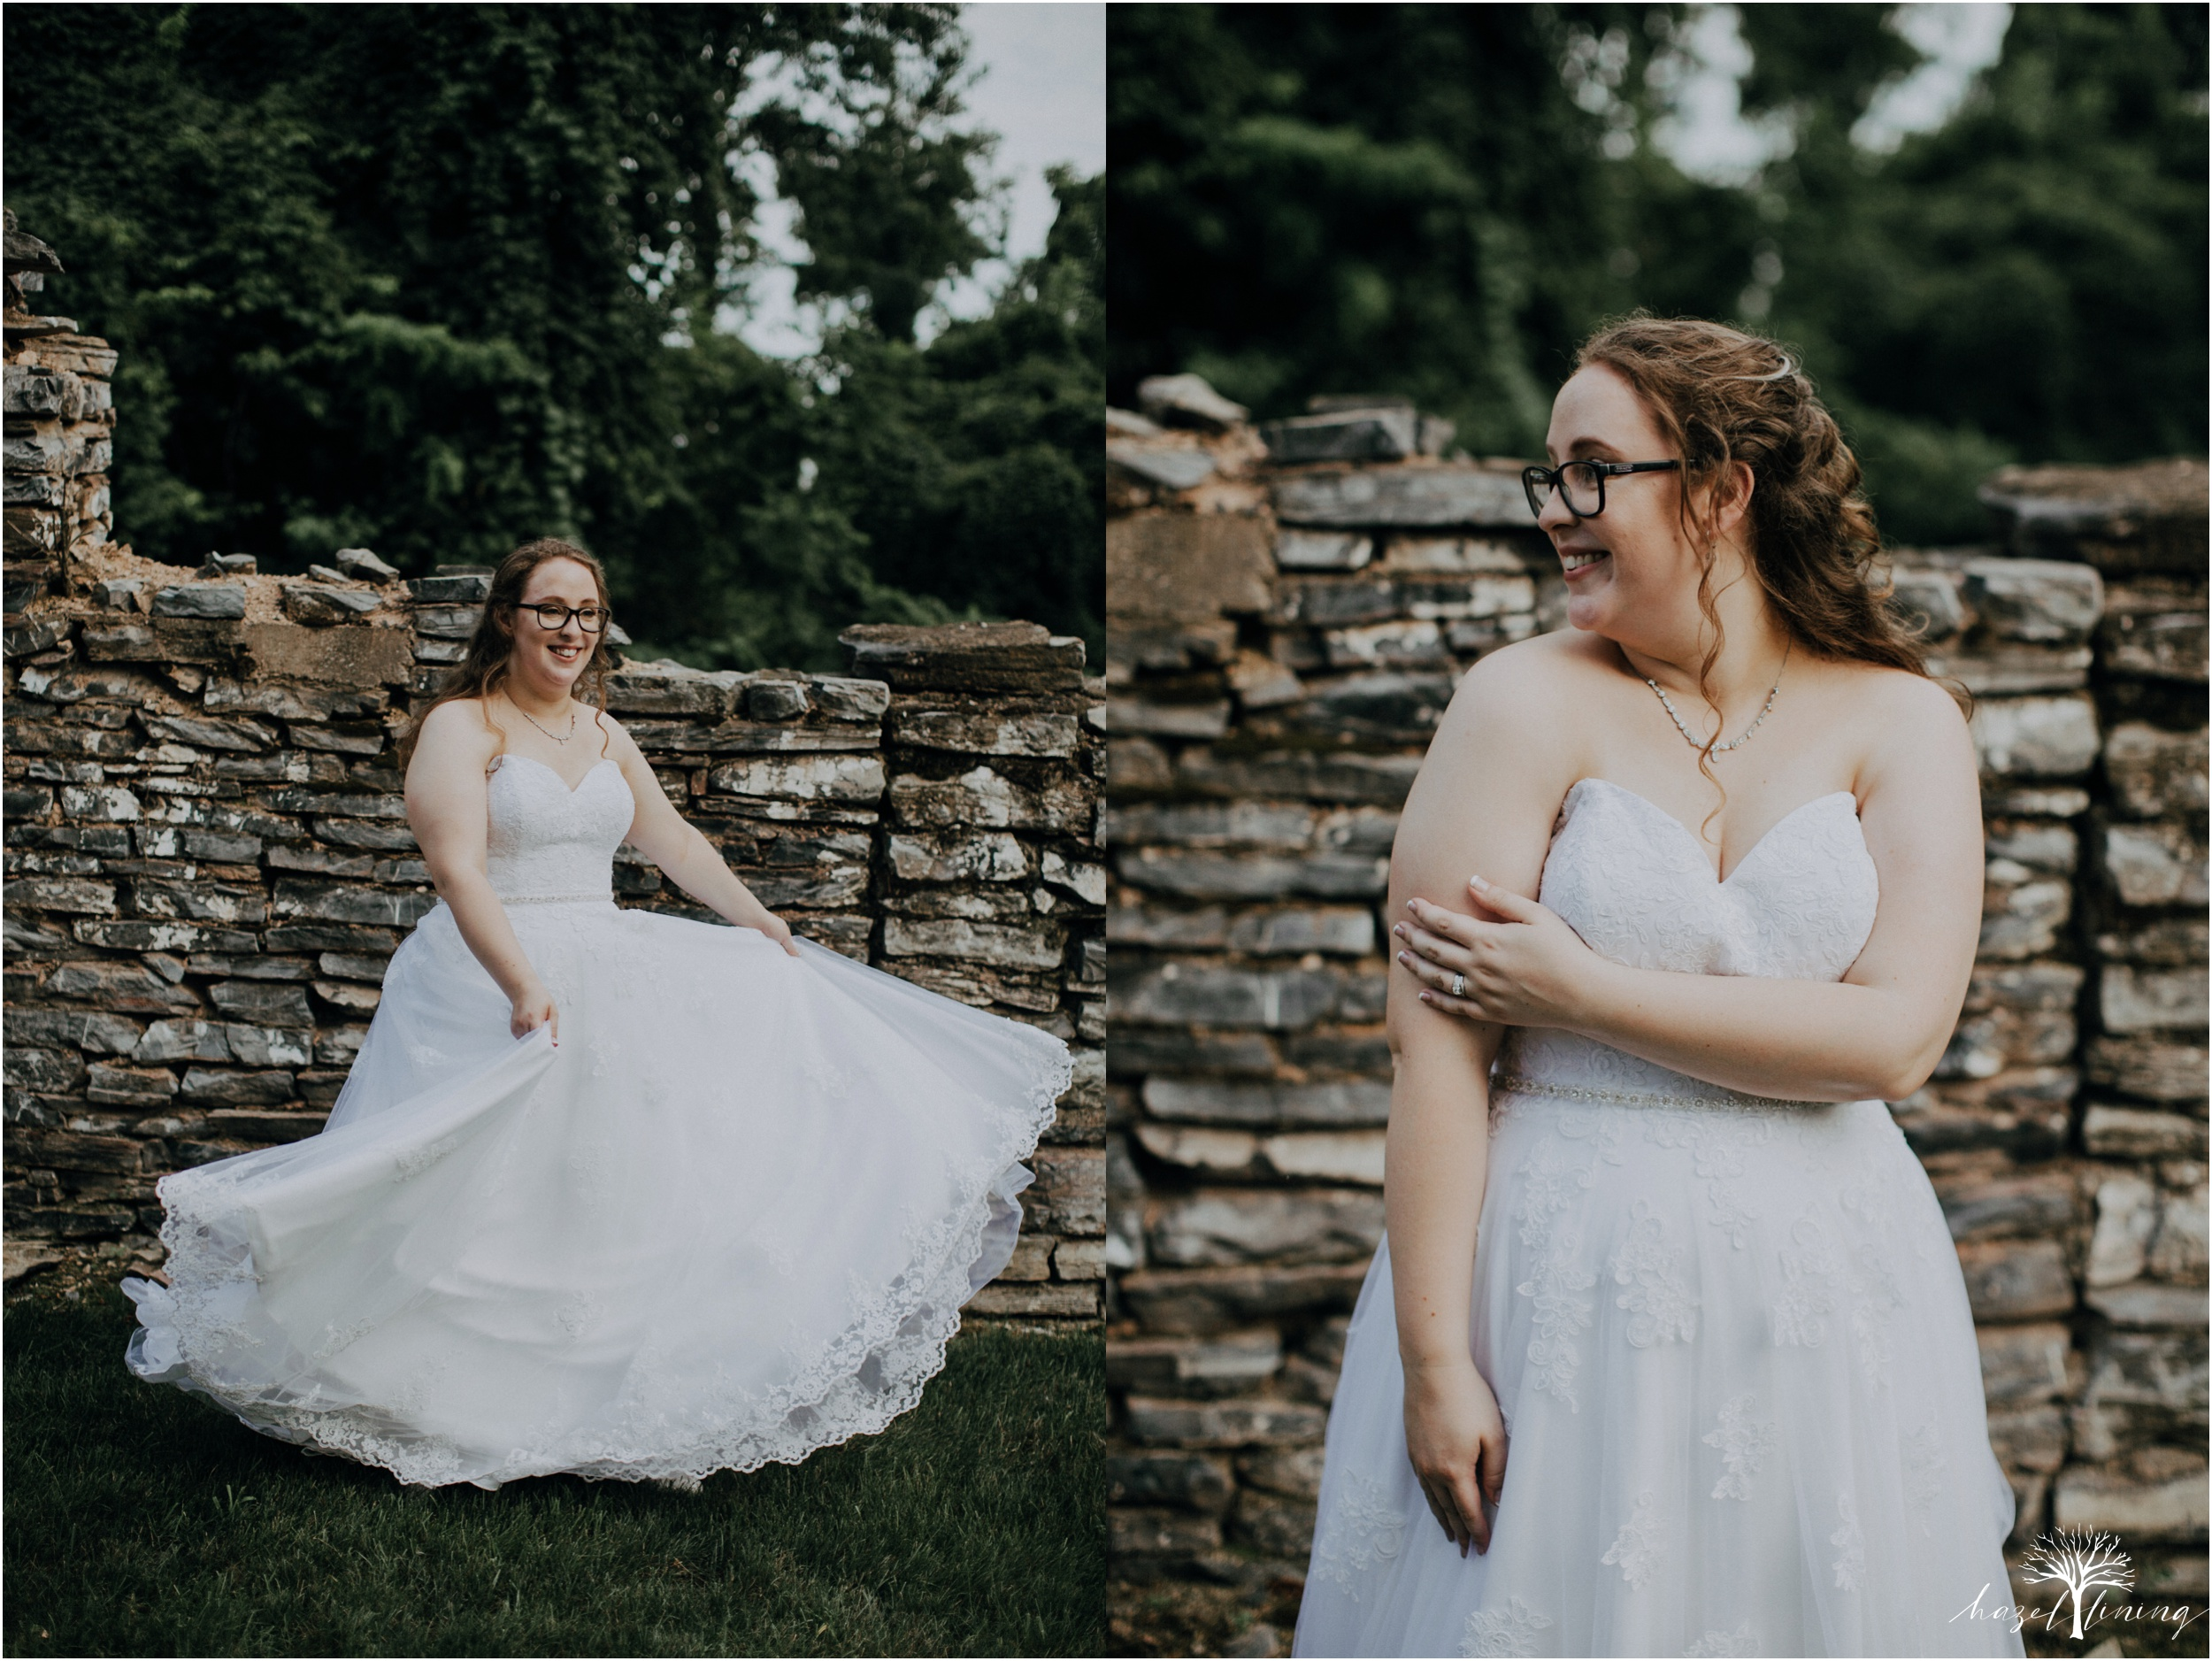 laura-zach-mccaskill-harmony-hall-lebanon-valley-college-summer-wedding-hazel-lining-photography-destination-elopement-wedding-engagement-photography_0156.jpg